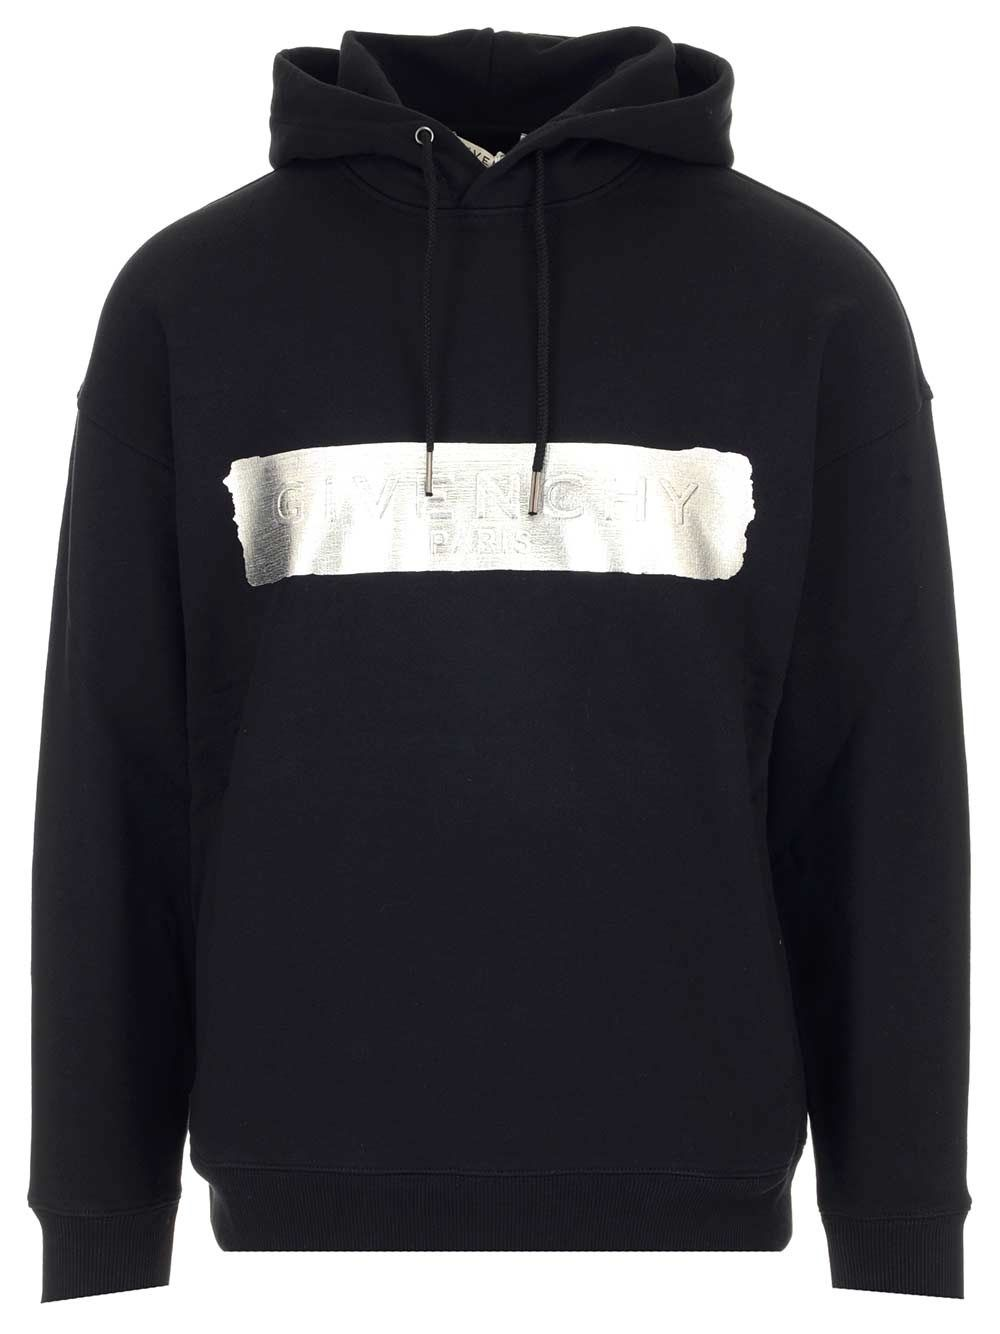 Givenchy GIVENCHY MEN'S BLACK OTHER MATERIALS SWEATSHIRT